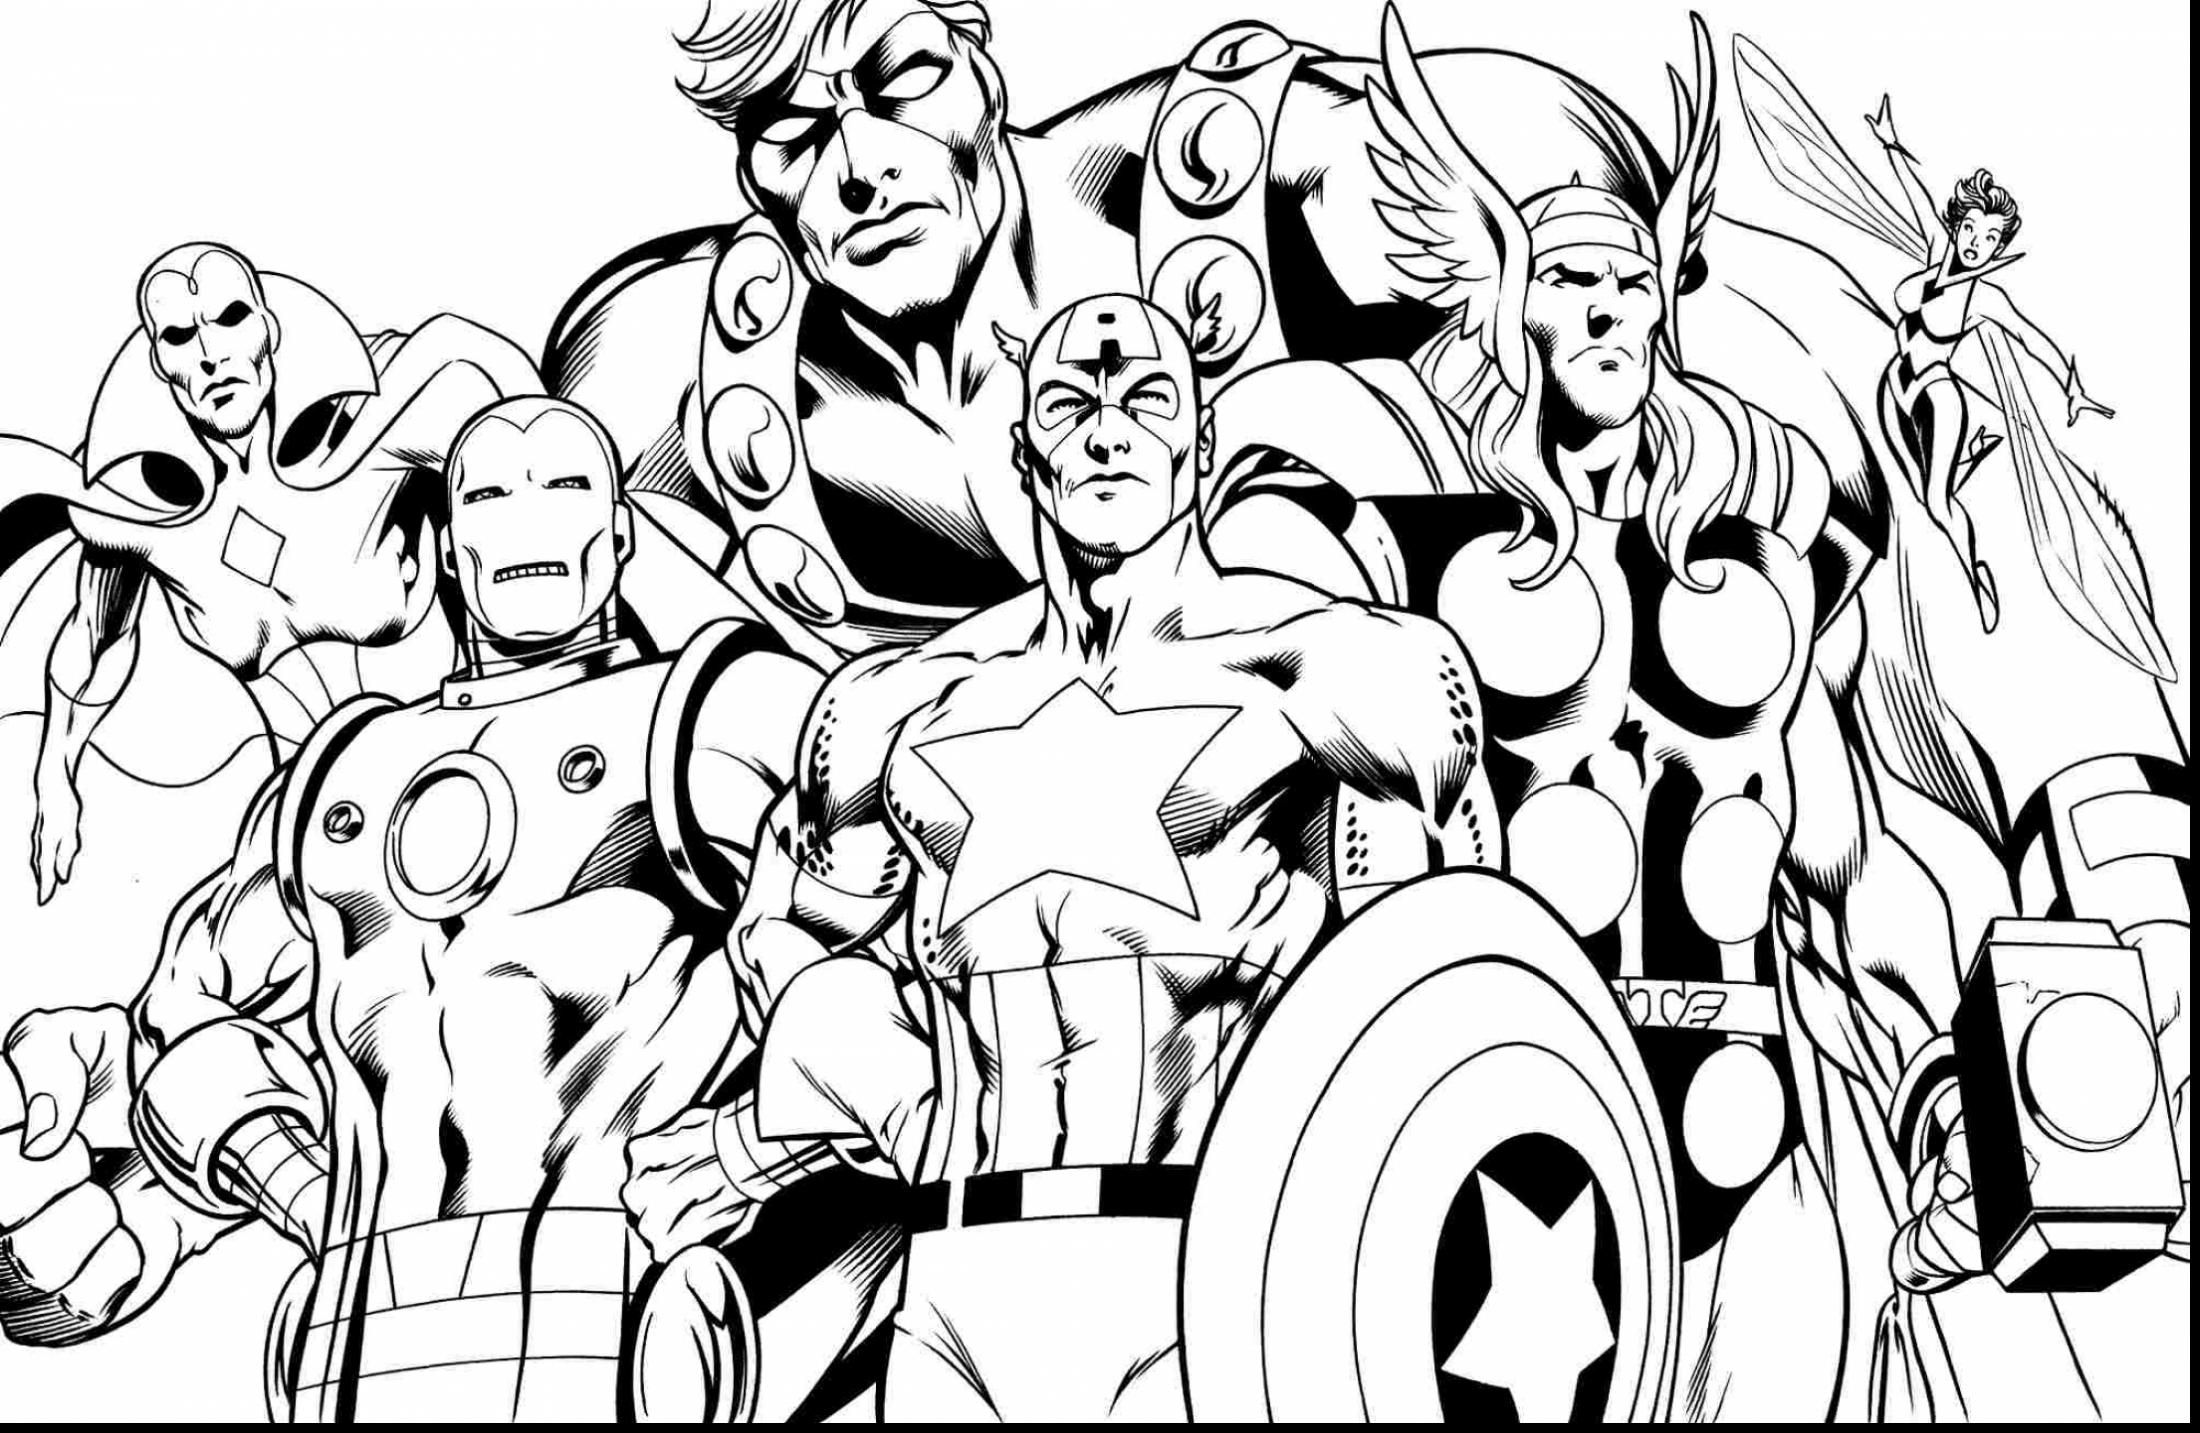 Superhero Printables With Images Avengers Coloring Pages Superhero Coloring Pages Avengers Coloring